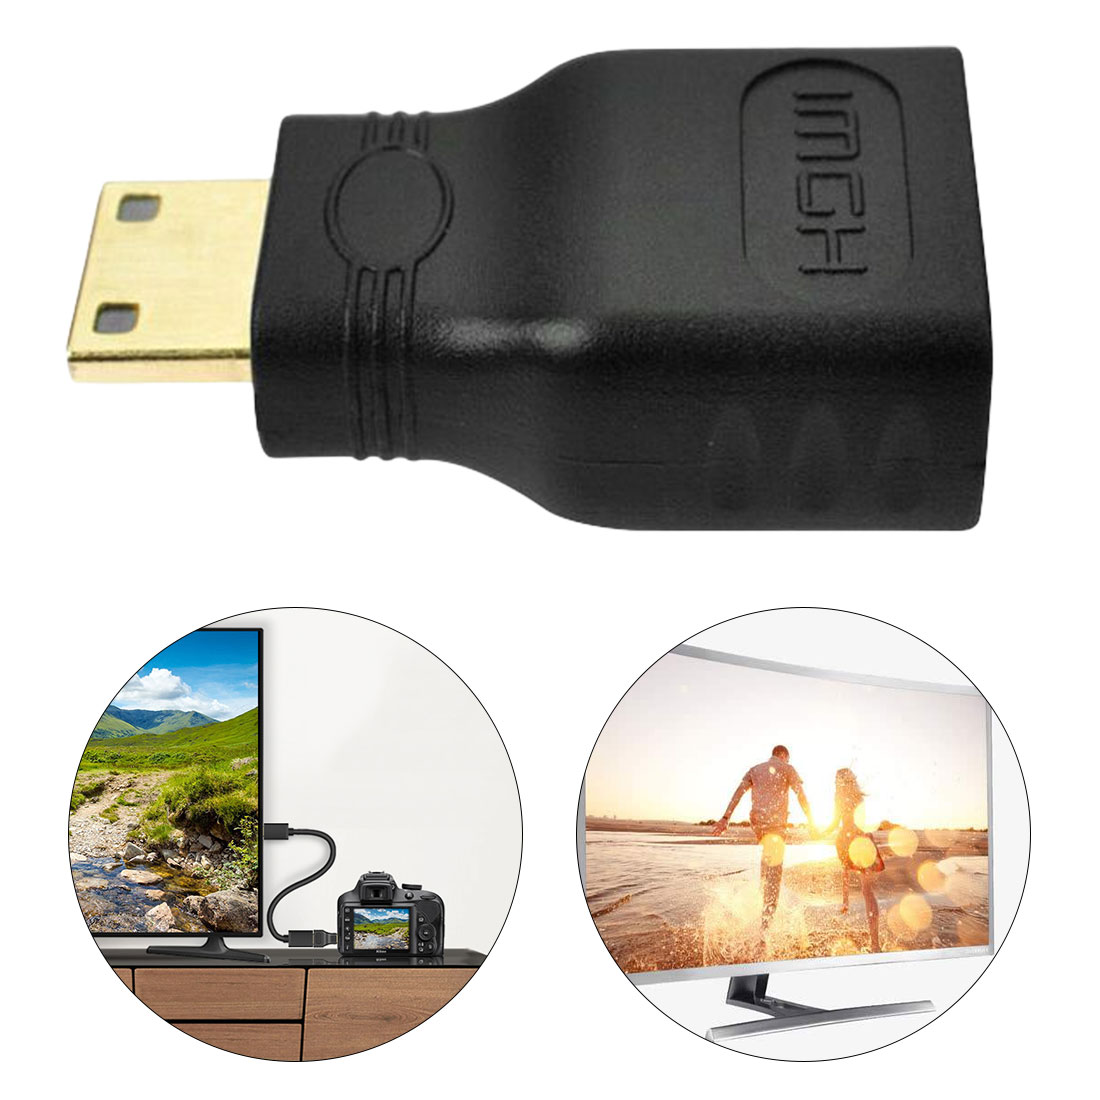 Male Type C to Female Type A Adapter Plug for 1080p 3D HDMI Connector TV USB charger USB Adapter|Phone Adapters & Converters| |  - title=